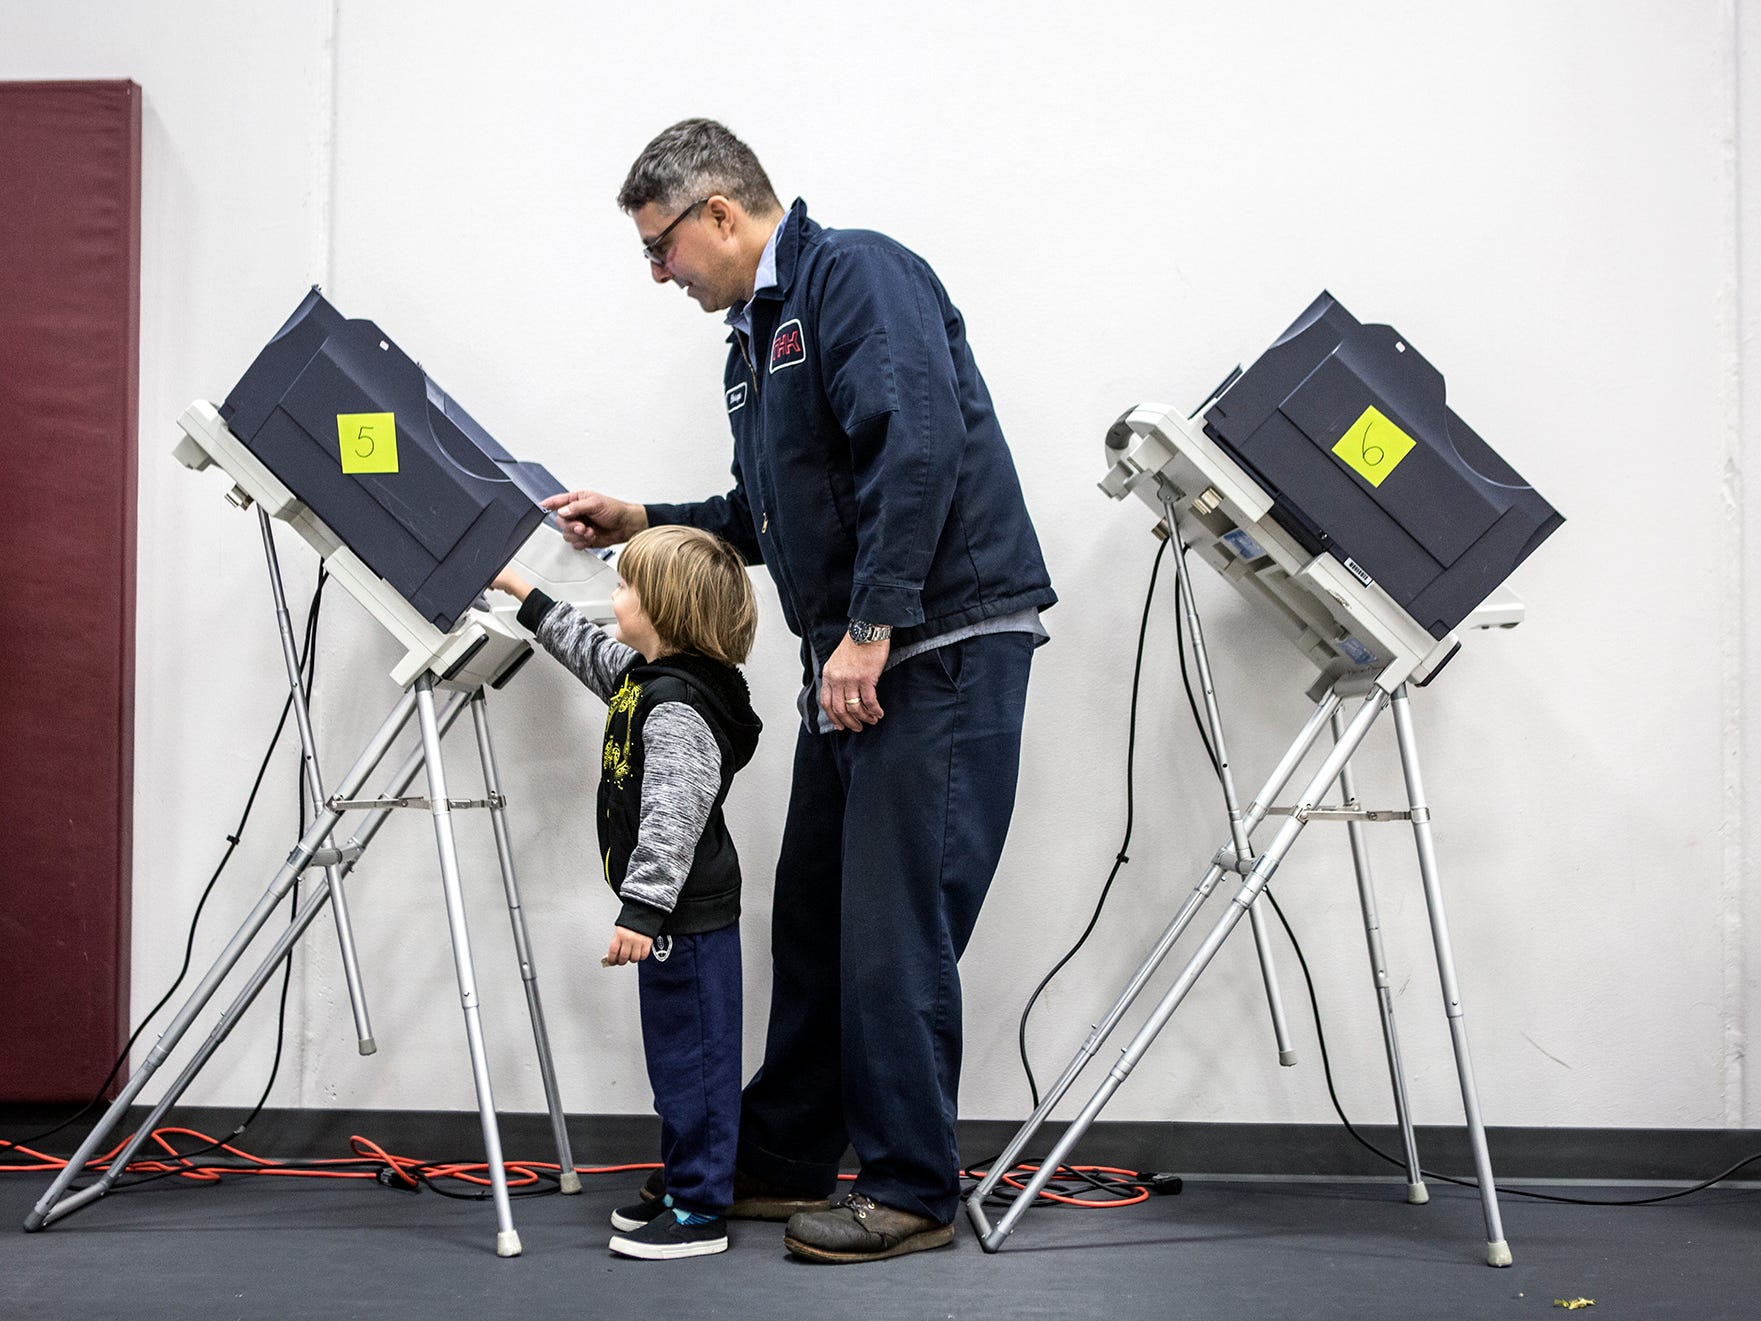 Daniel Hoops, 4, helps his dad, Bryan vote Tuesday at the Licking County YMCA for the 2018 midterm elections.